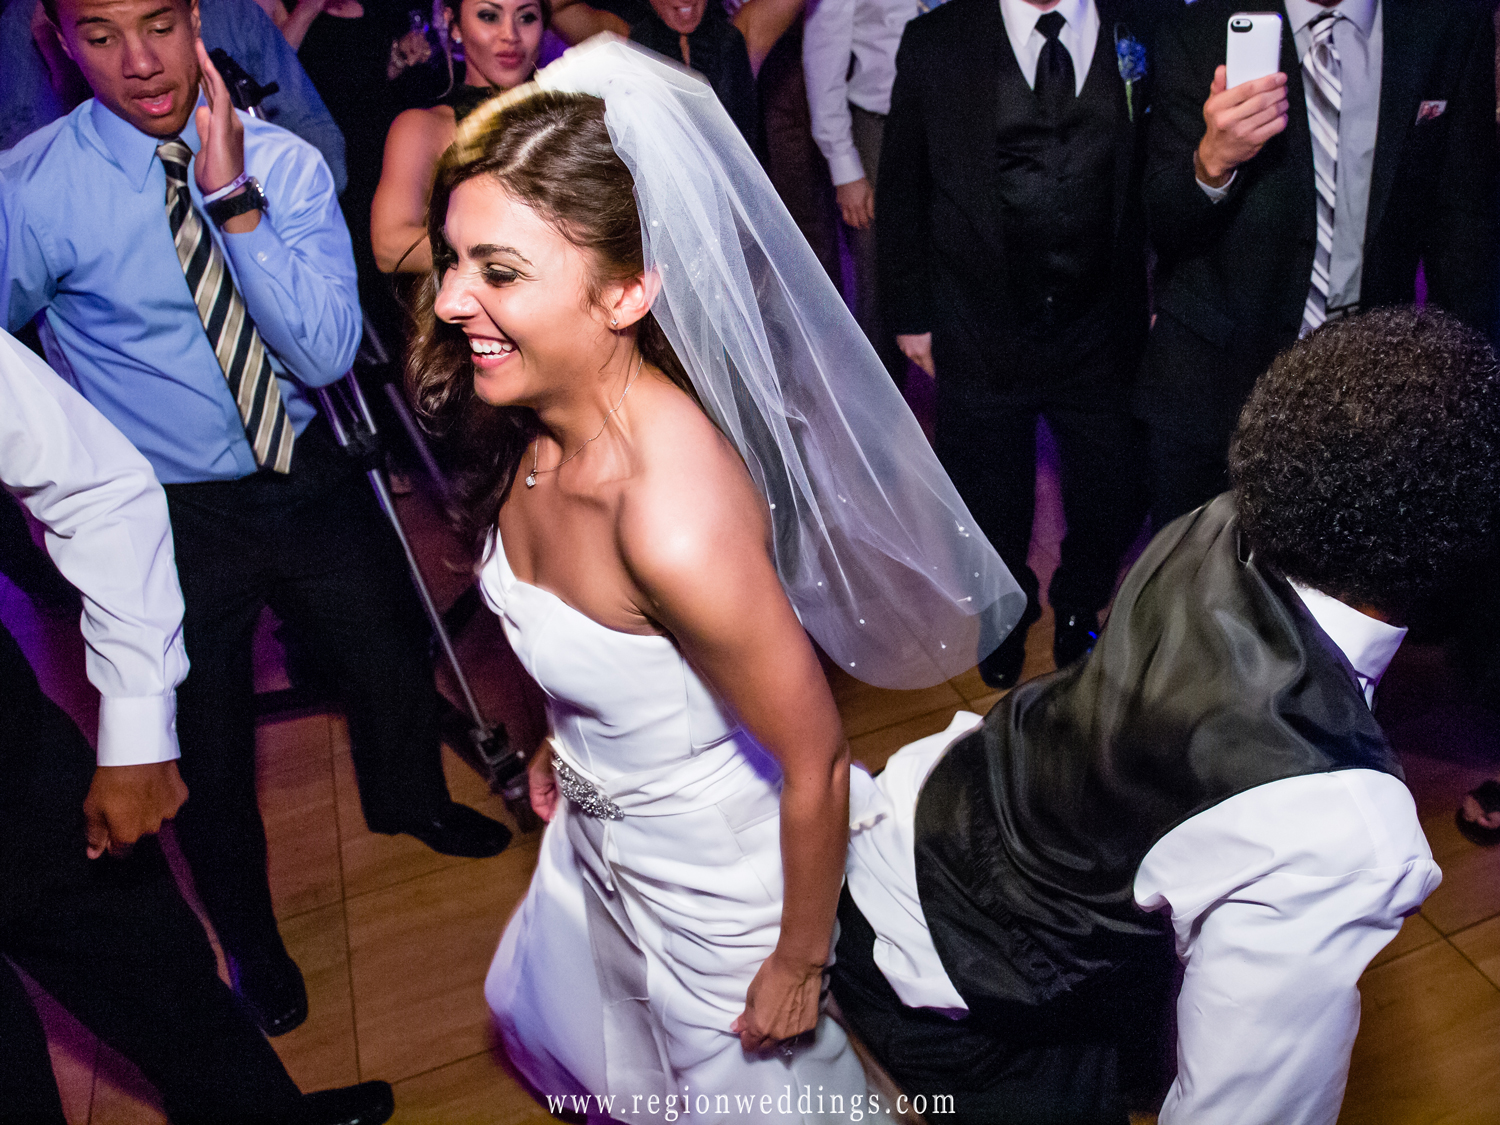 A bride shakes her booty as guests party at her wedding reception.